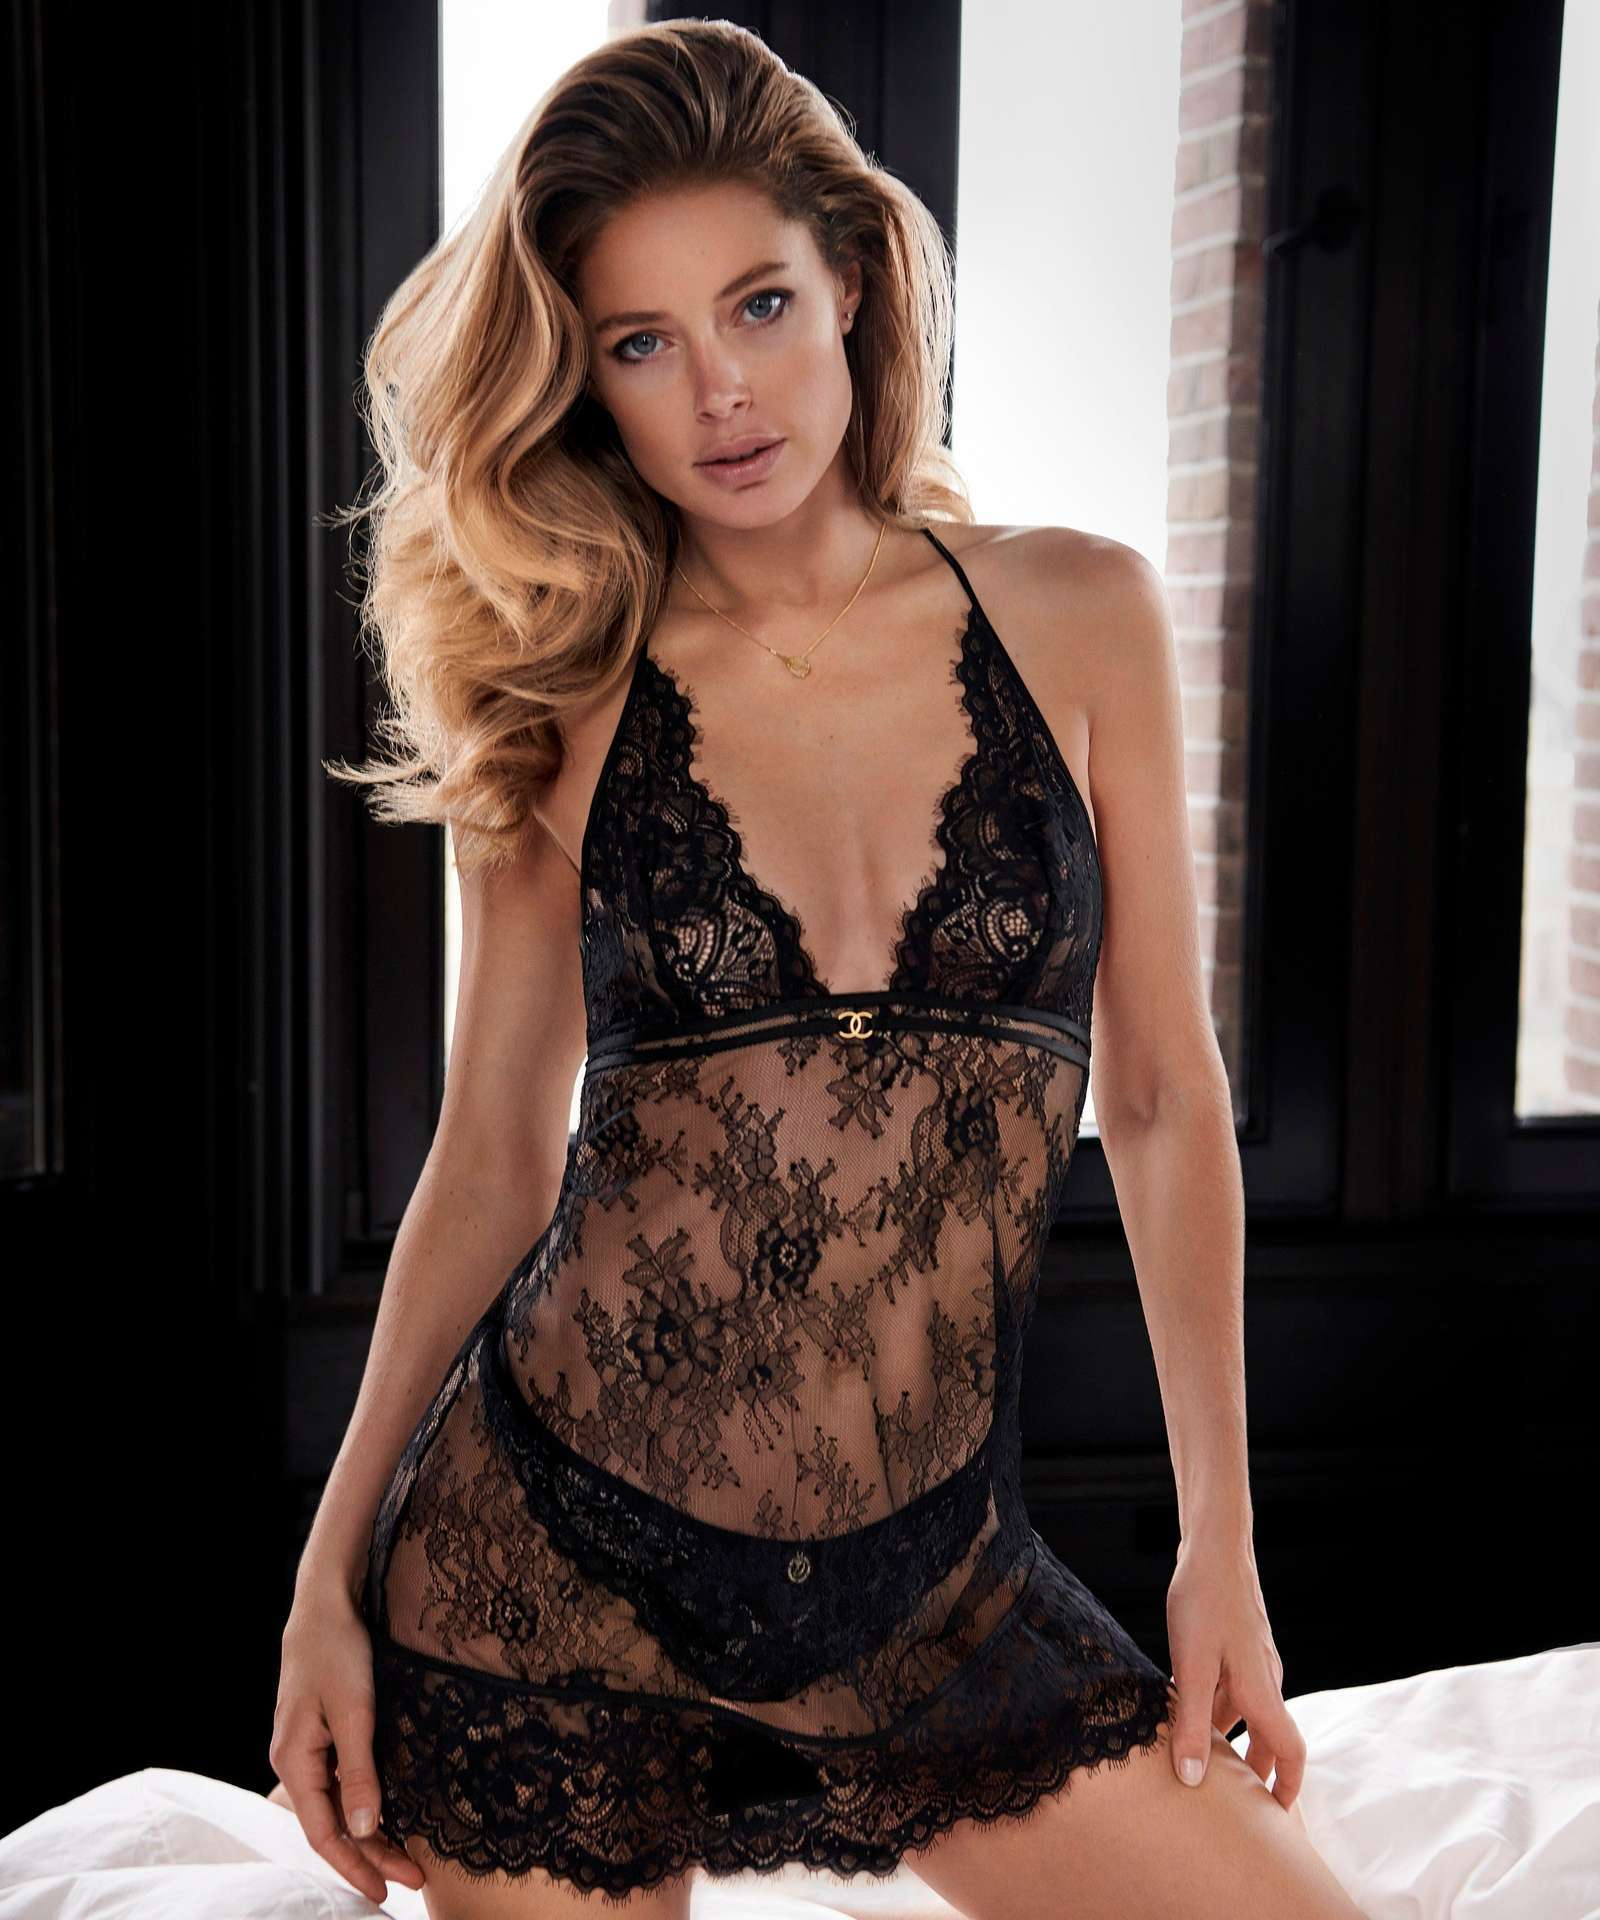 Doutzen Kroes in Hunkemöller for Doutzens-Stories Collection Fall 2018 (7).jpg